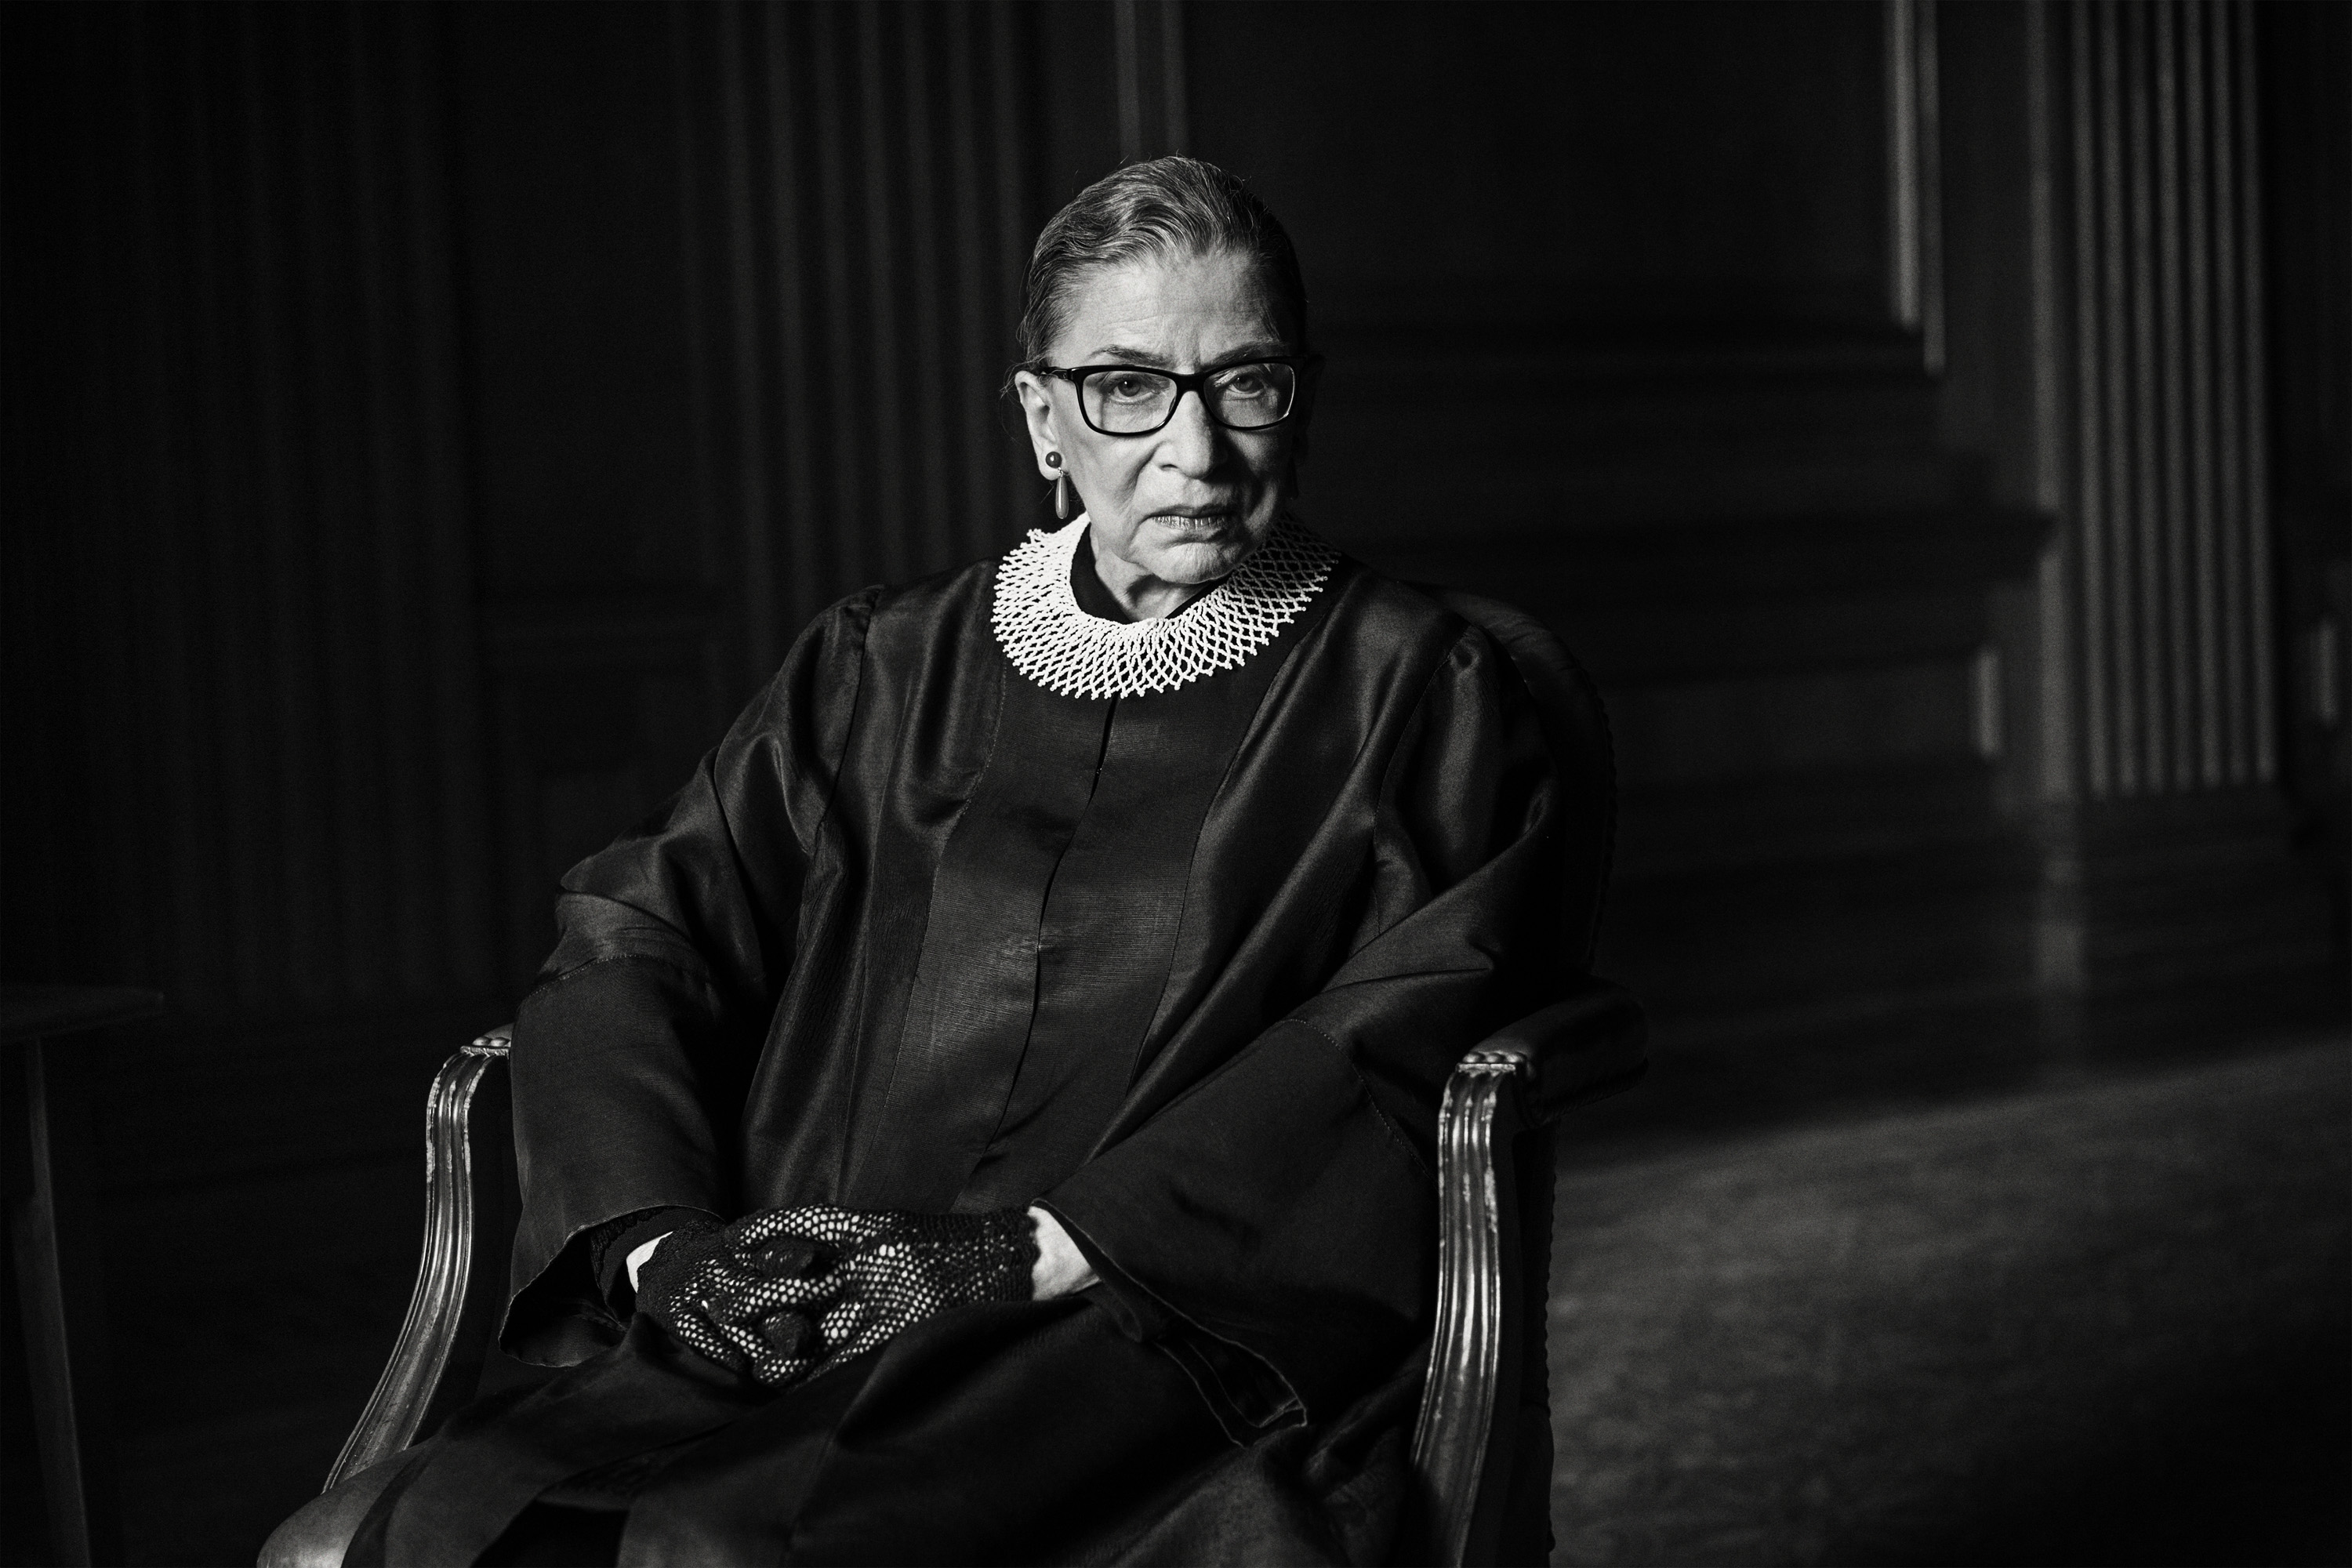 Portrait of Associate Justice of the Supreme Court of the United States Ruth Bader Ginsburg photographed on Tuesday, March 17th, 2015 at the Supreme Court East Conference Room in Washington D.C. for TIME.